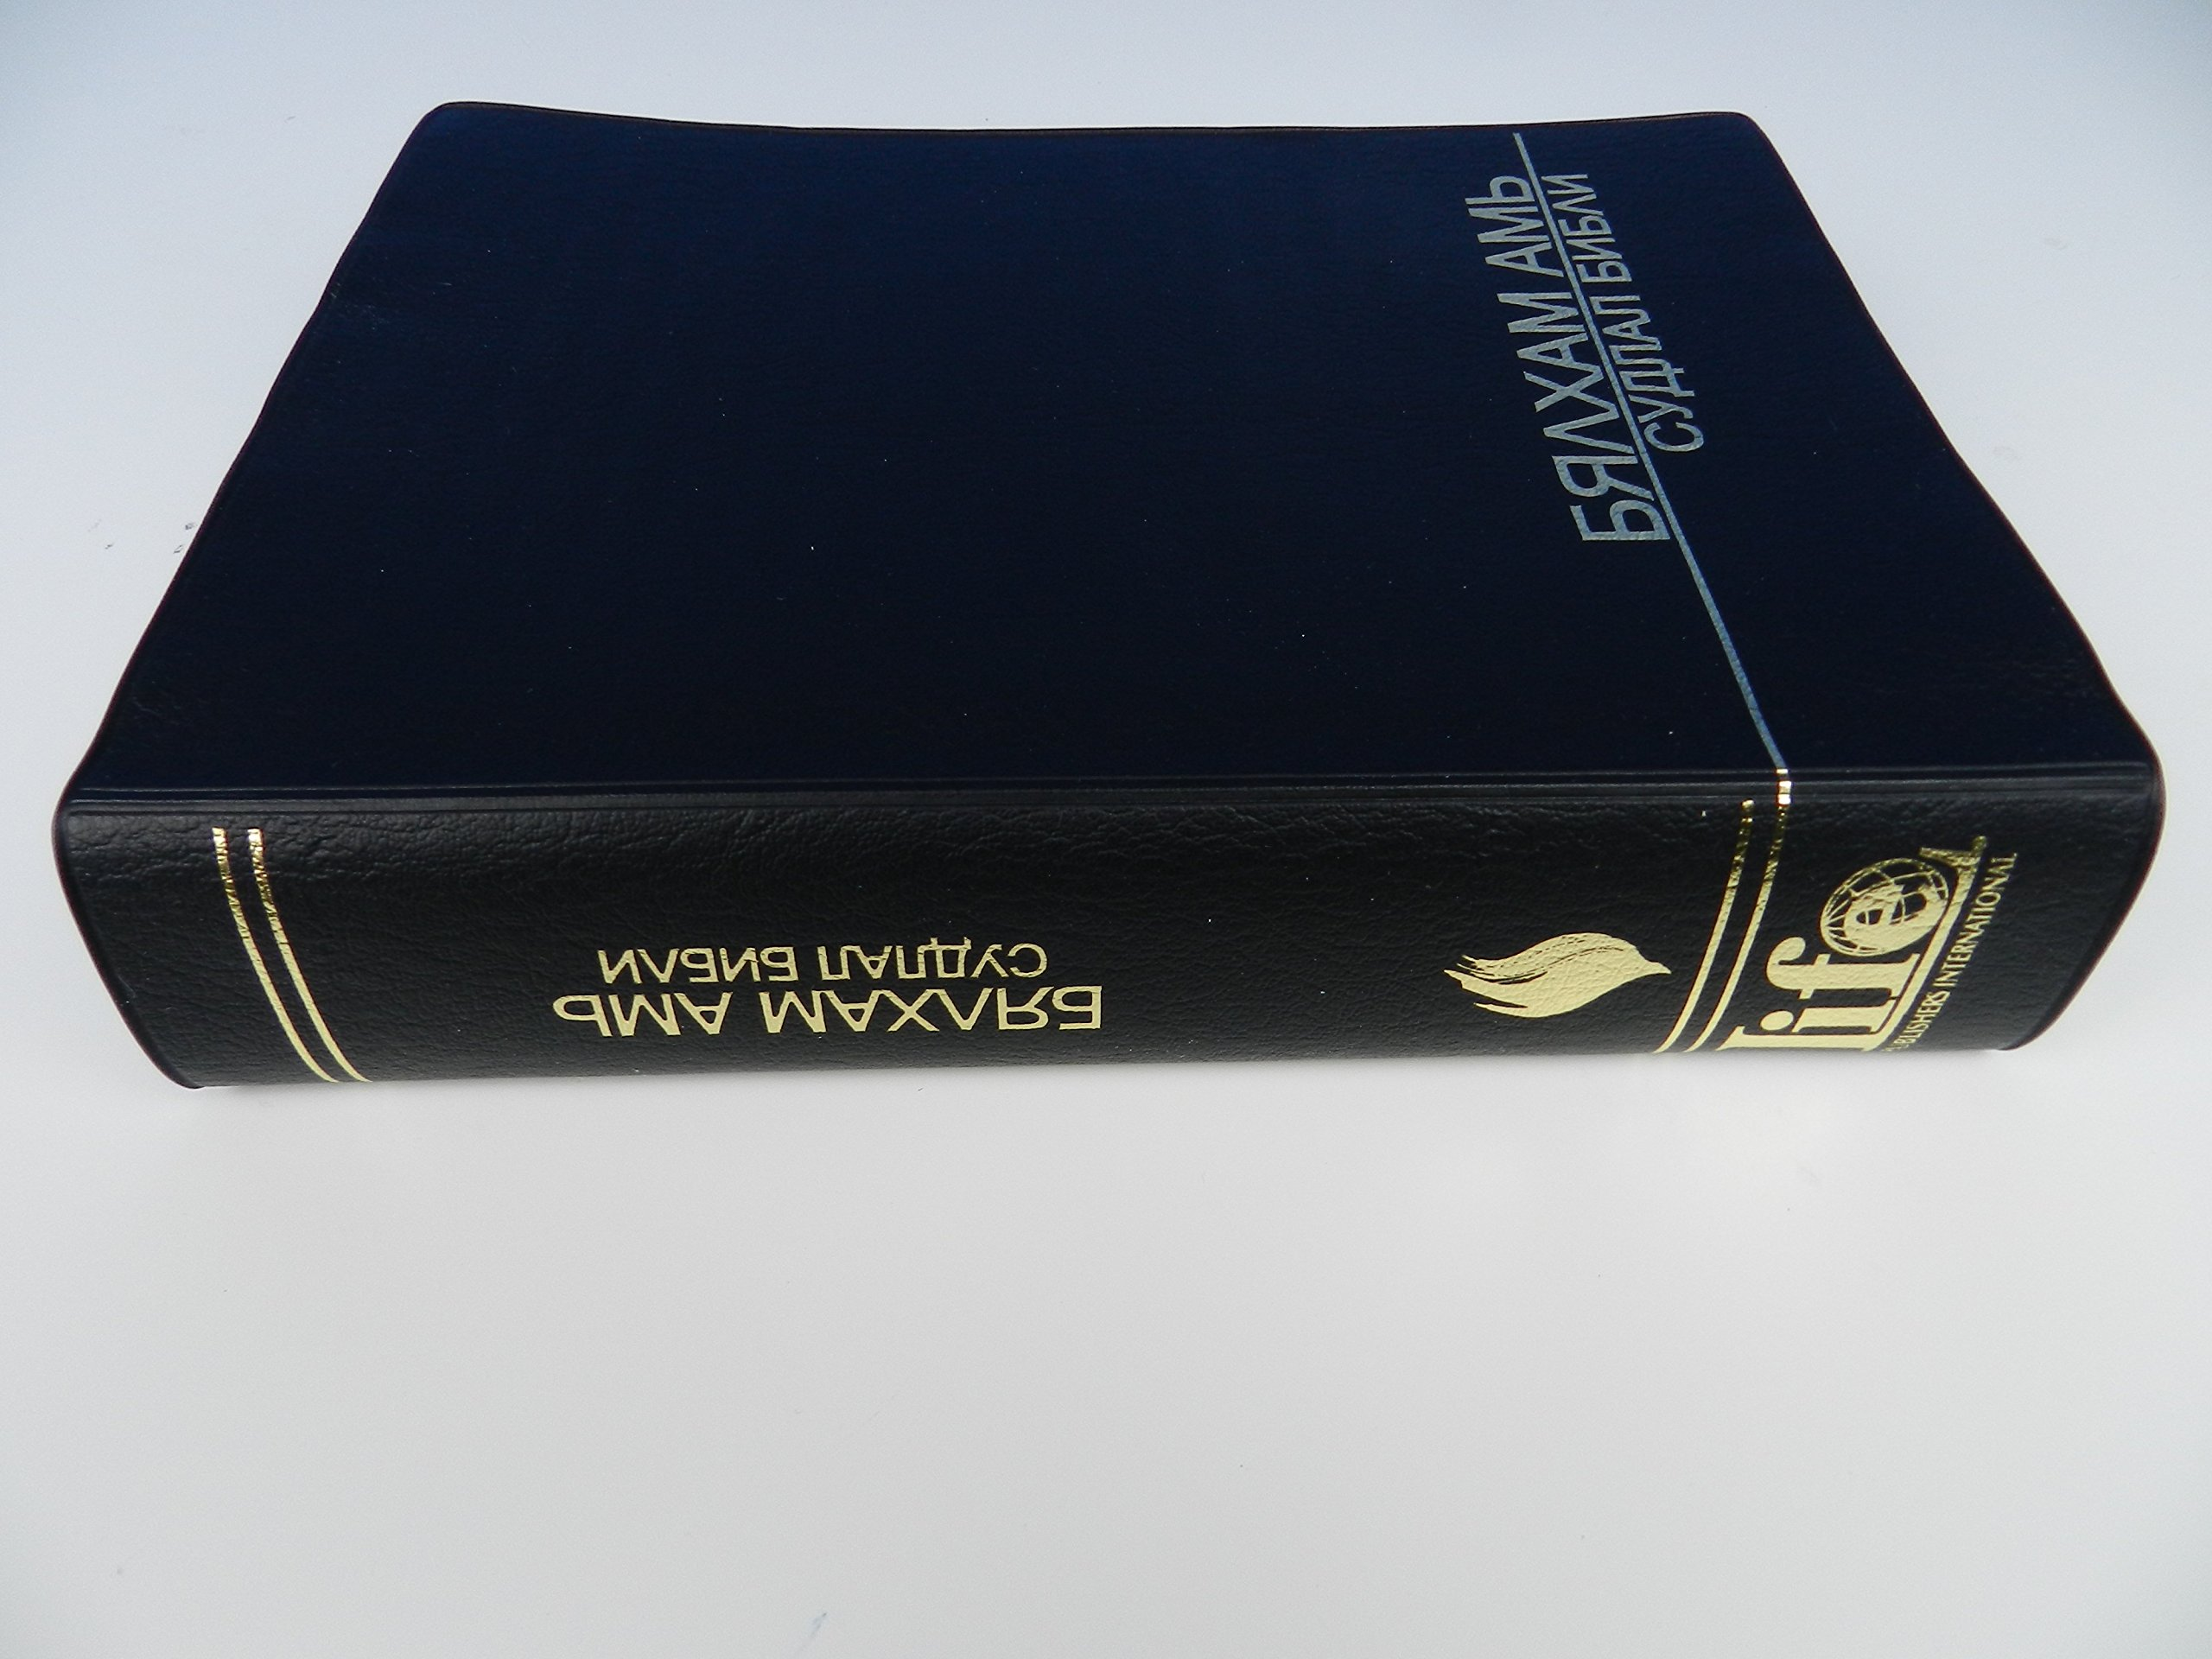 The Full Life Study Bible in Mongolian Language – The Spirit Filled Fire Bible / Black Leather Bound, Concordance, Color Maps / Бялхам Амь Судлал Библи